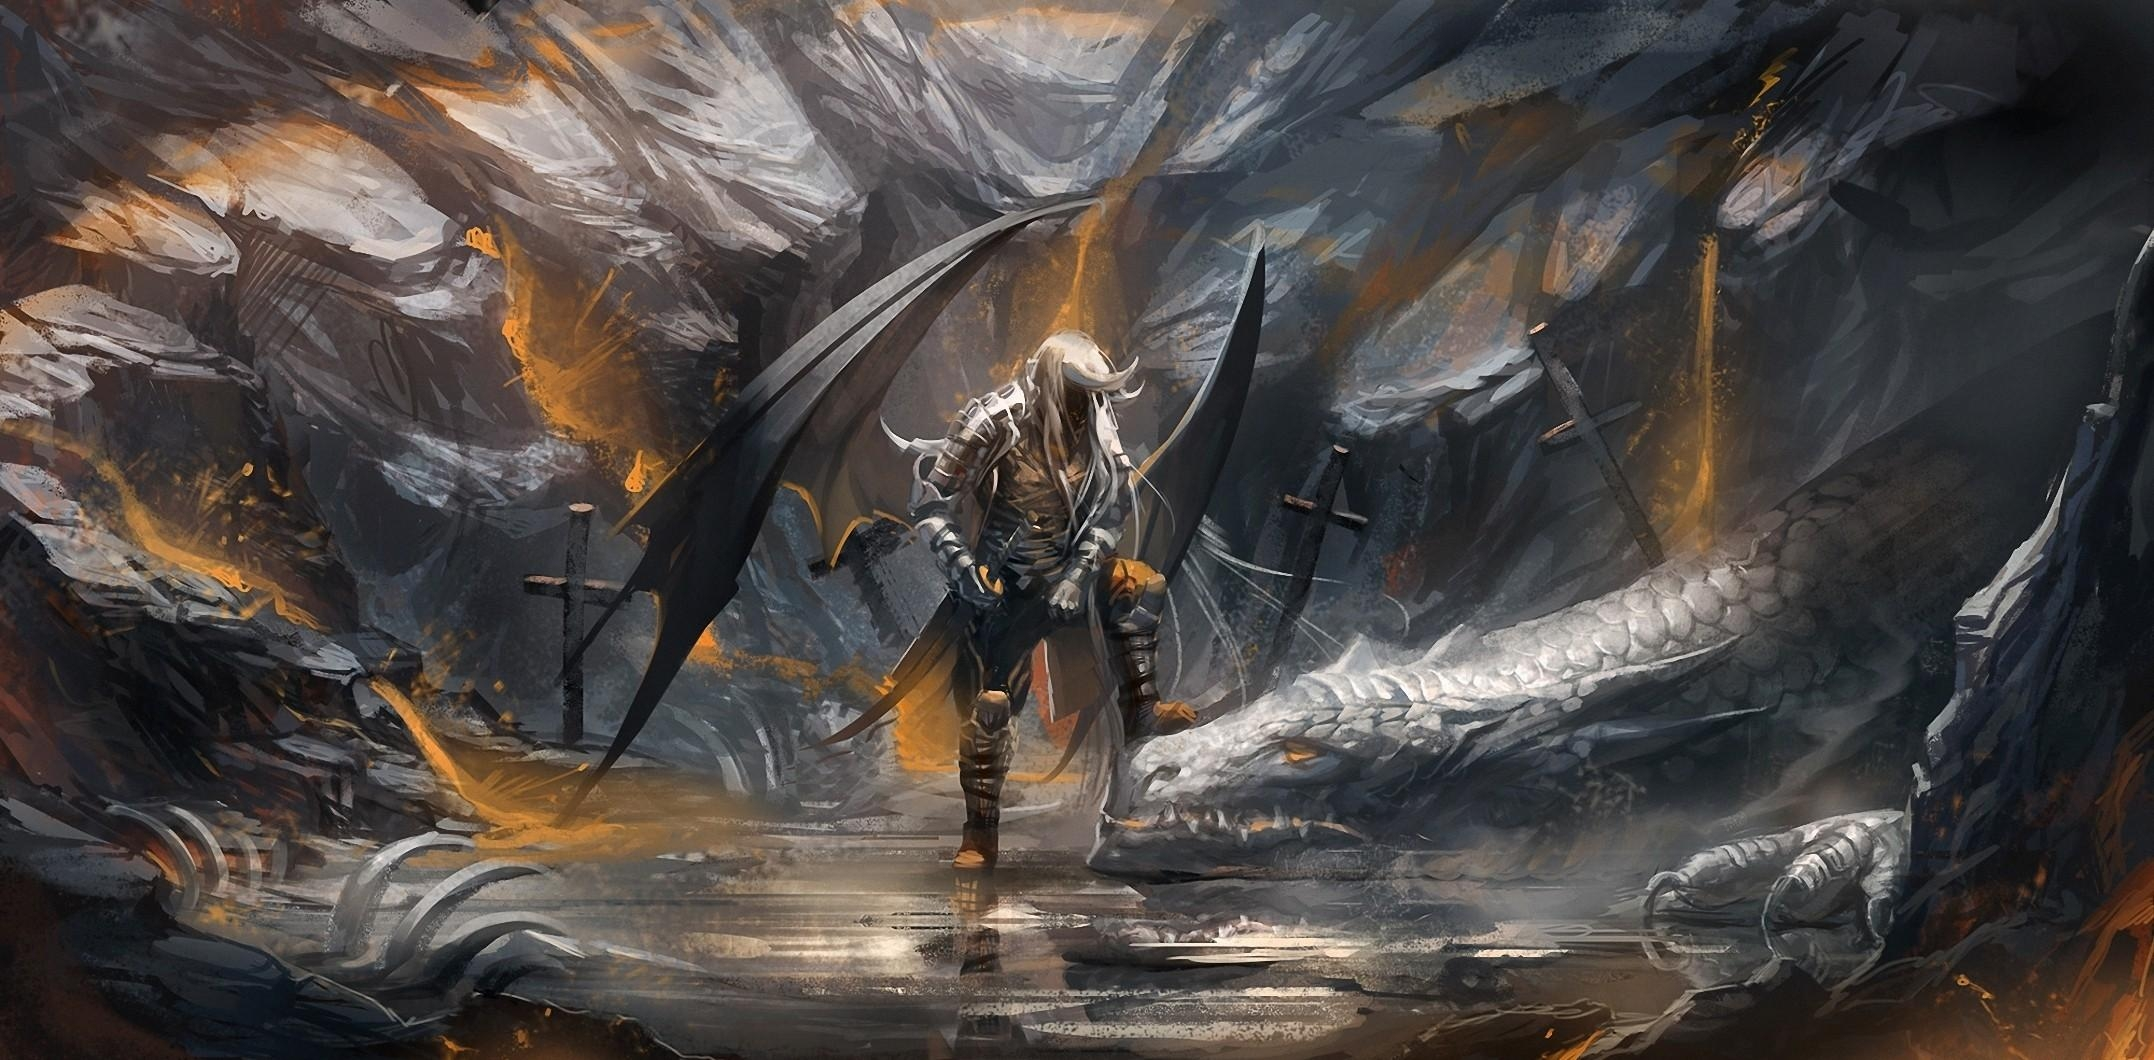 53954 download wallpaper Fantasy, Demon, Dragon, Cave, Swords screensavers and pictures for free